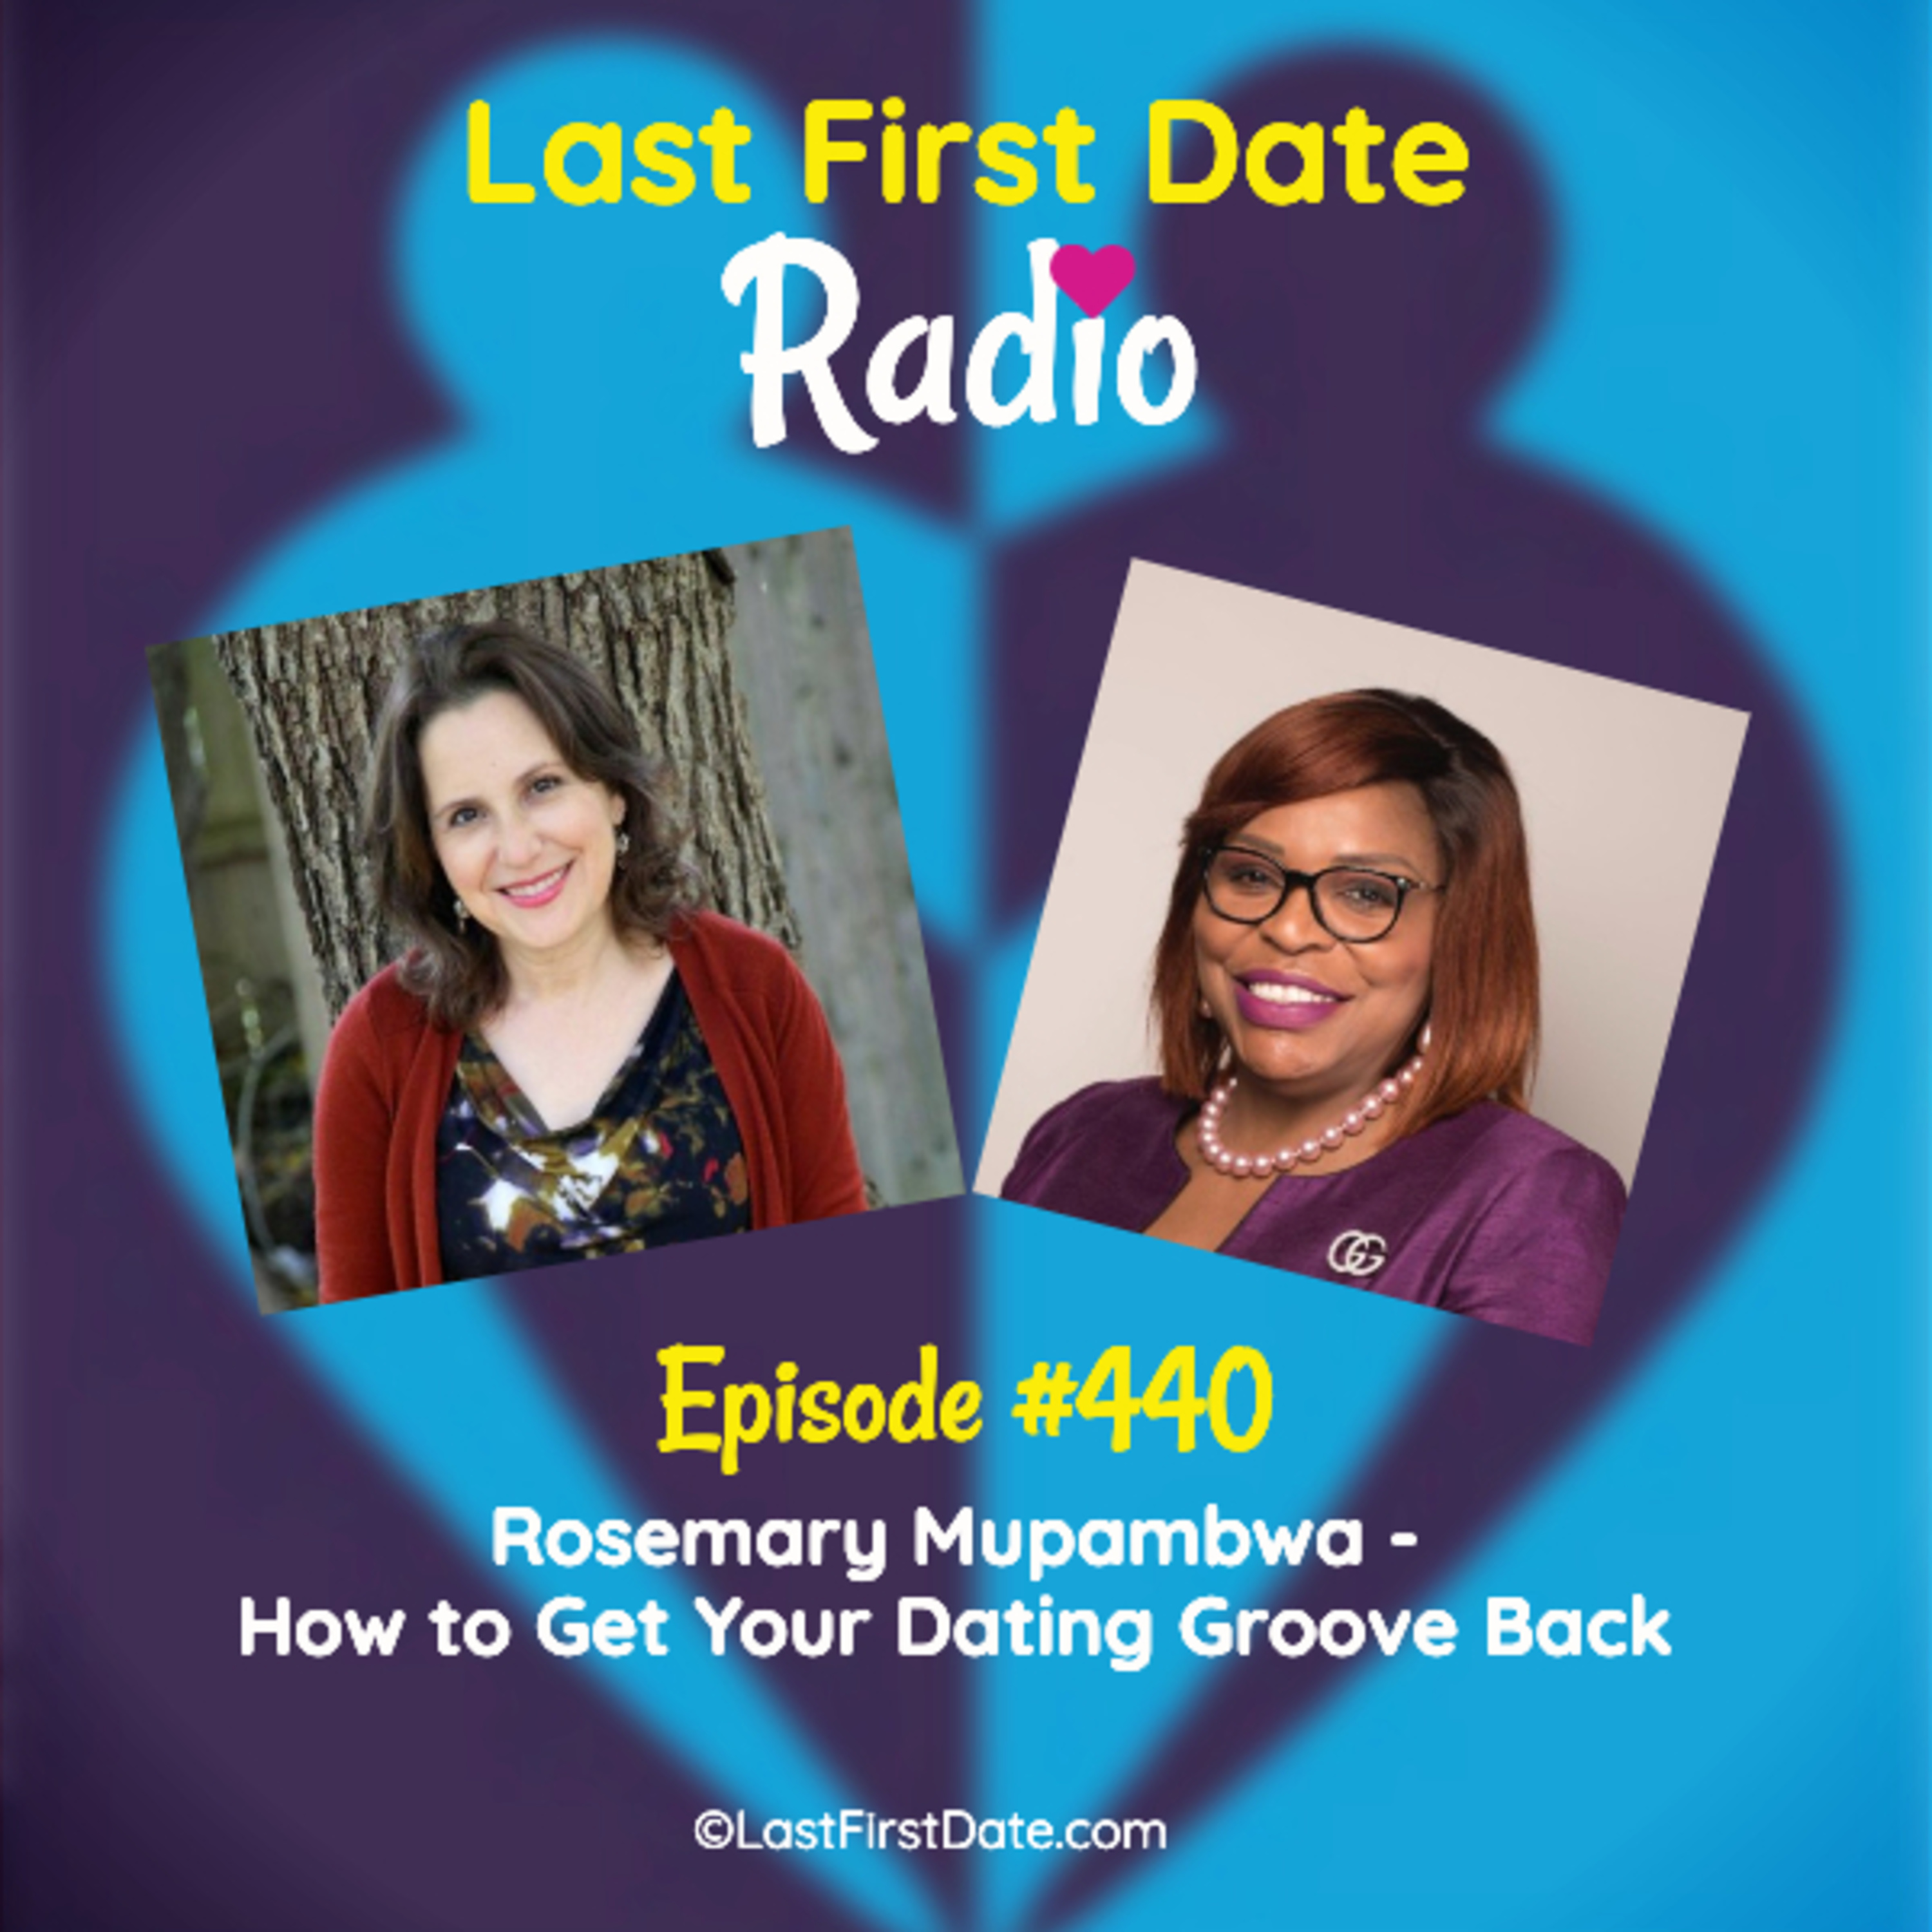 Last First Date Radio - EP 440: Rosemary Mupambwa - How to Get Your Dating Groove Back